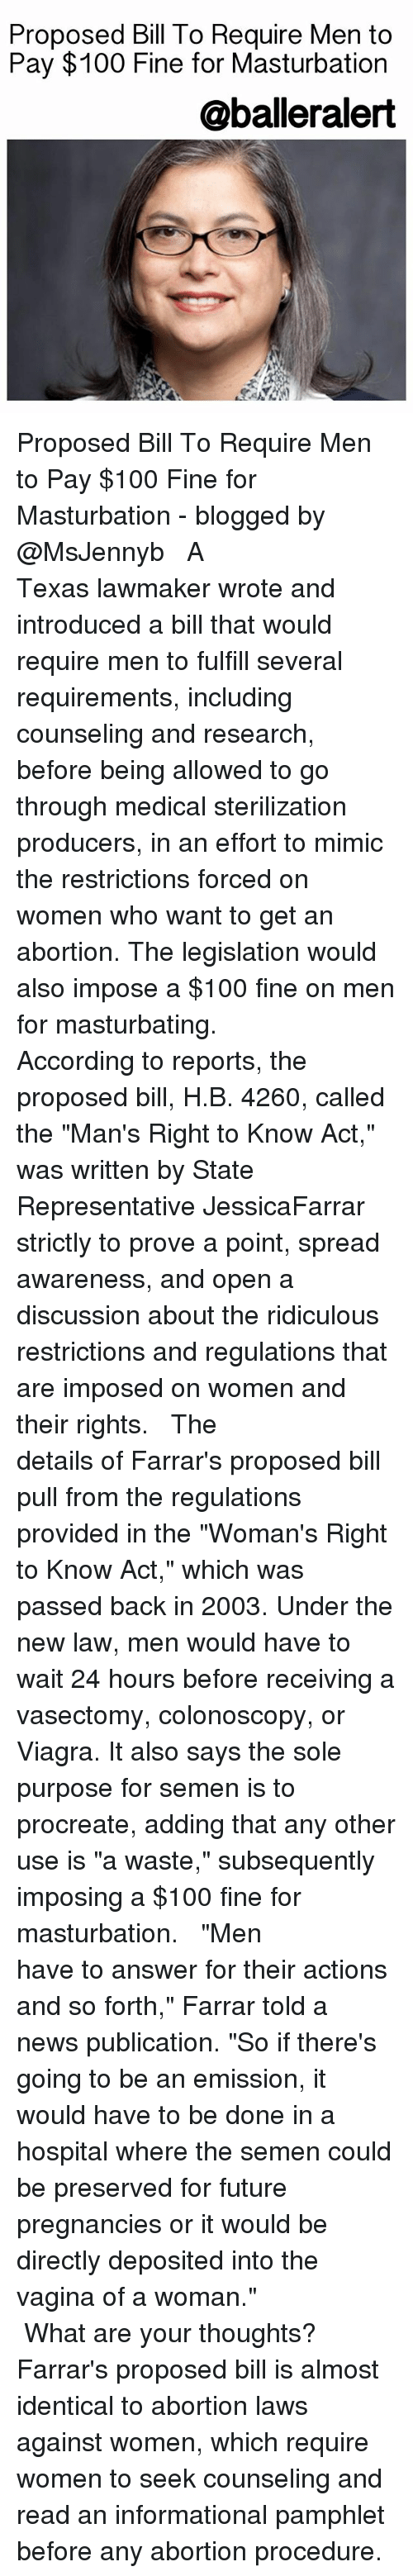 """Mimicer: Proposed Bill To Require Men to  Pay $100 Fine for Masturbation  @balleralert Proposed Bill To Require Men to Pay $100 Fine for Masturbation - blogged by @MsJennyb ⠀⠀⠀⠀⠀⠀⠀⠀⠀ ⠀⠀⠀⠀⠀⠀⠀⠀⠀ A Texas lawmaker wrote and introduced a bill that would require men to fulfill several requirements, including counseling and research, before being allowed to go through medical sterilization producers, in an effort to mimic the restrictions forced on women who want to get an abortion. The legislation would also impose a $100 fine on men for masturbating. ⠀⠀⠀⠀⠀⠀⠀⠀⠀ ⠀⠀⠀⠀⠀⠀⠀⠀⠀ According to reports, the proposed bill, H.B. 4260, called the """"Man's Right to Know Act,"""" was written by State Representative JessicaFarrar strictly to prove a point, spread awareness, and open a discussion about the ridiculous restrictions and regulations that are imposed on women and their rights. ⠀⠀⠀⠀⠀⠀⠀⠀⠀ ⠀⠀⠀⠀⠀⠀⠀⠀⠀ The details of Farrar's proposed bill pull from the regulations provided in the """"Woman's Right to Know Act,"""" which was passed back in 2003. Under the new law, men would have to wait 24 hours before receiving a vasectomy, colonoscopy, or Viagra. It also says the sole purpose for semen is to procreate, adding that any other use is """"a waste,"""" subsequently imposing a $100 fine for masturbation. ⠀⠀⠀⠀⠀⠀⠀⠀⠀ ⠀⠀⠀⠀⠀⠀⠀⠀⠀ """"Men have to answer for their actions and so forth,"""" Farrar told a news publication. """"So if there's going to be an emission, it would have to be done in a hospital where the semen could be preserved for future pregnancies or it would be directly deposited into the vagina of a woman."""" ⠀⠀⠀⠀⠀⠀⠀⠀⠀ ⠀⠀⠀⠀⠀⠀⠀⠀⠀ What are your thoughts? Farrar's proposed bill is almost identical to abortion laws against women, which require women to seek counseling and read an informational pamphlet before any abortion procedure."""